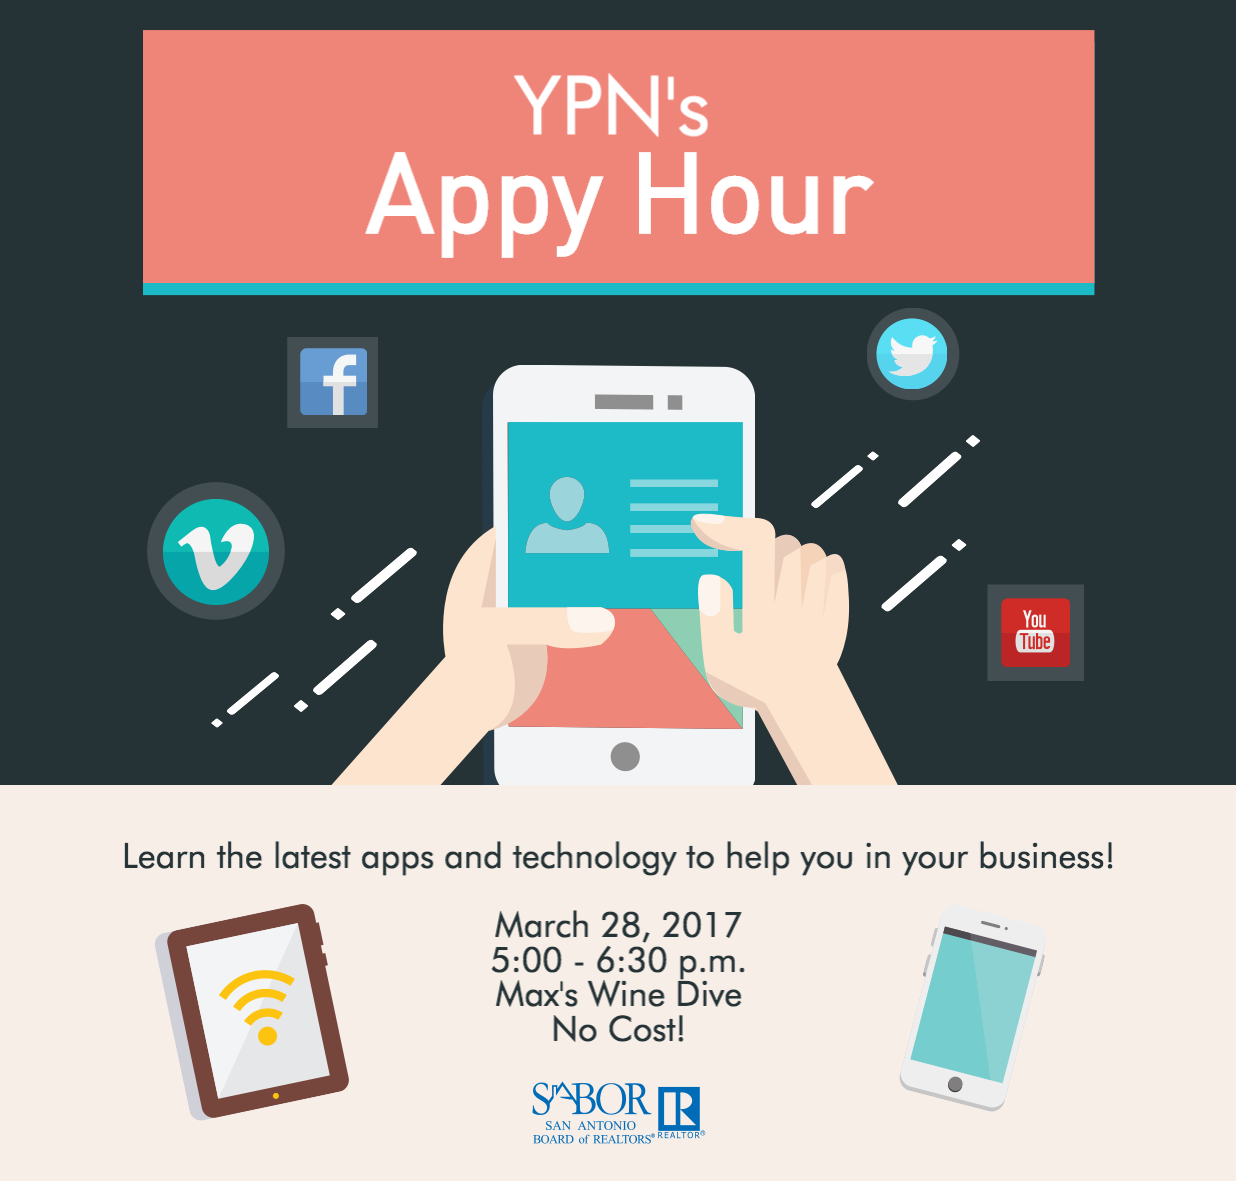 YPN's Appy Hour Is Coming Up On March 28th. Learn New